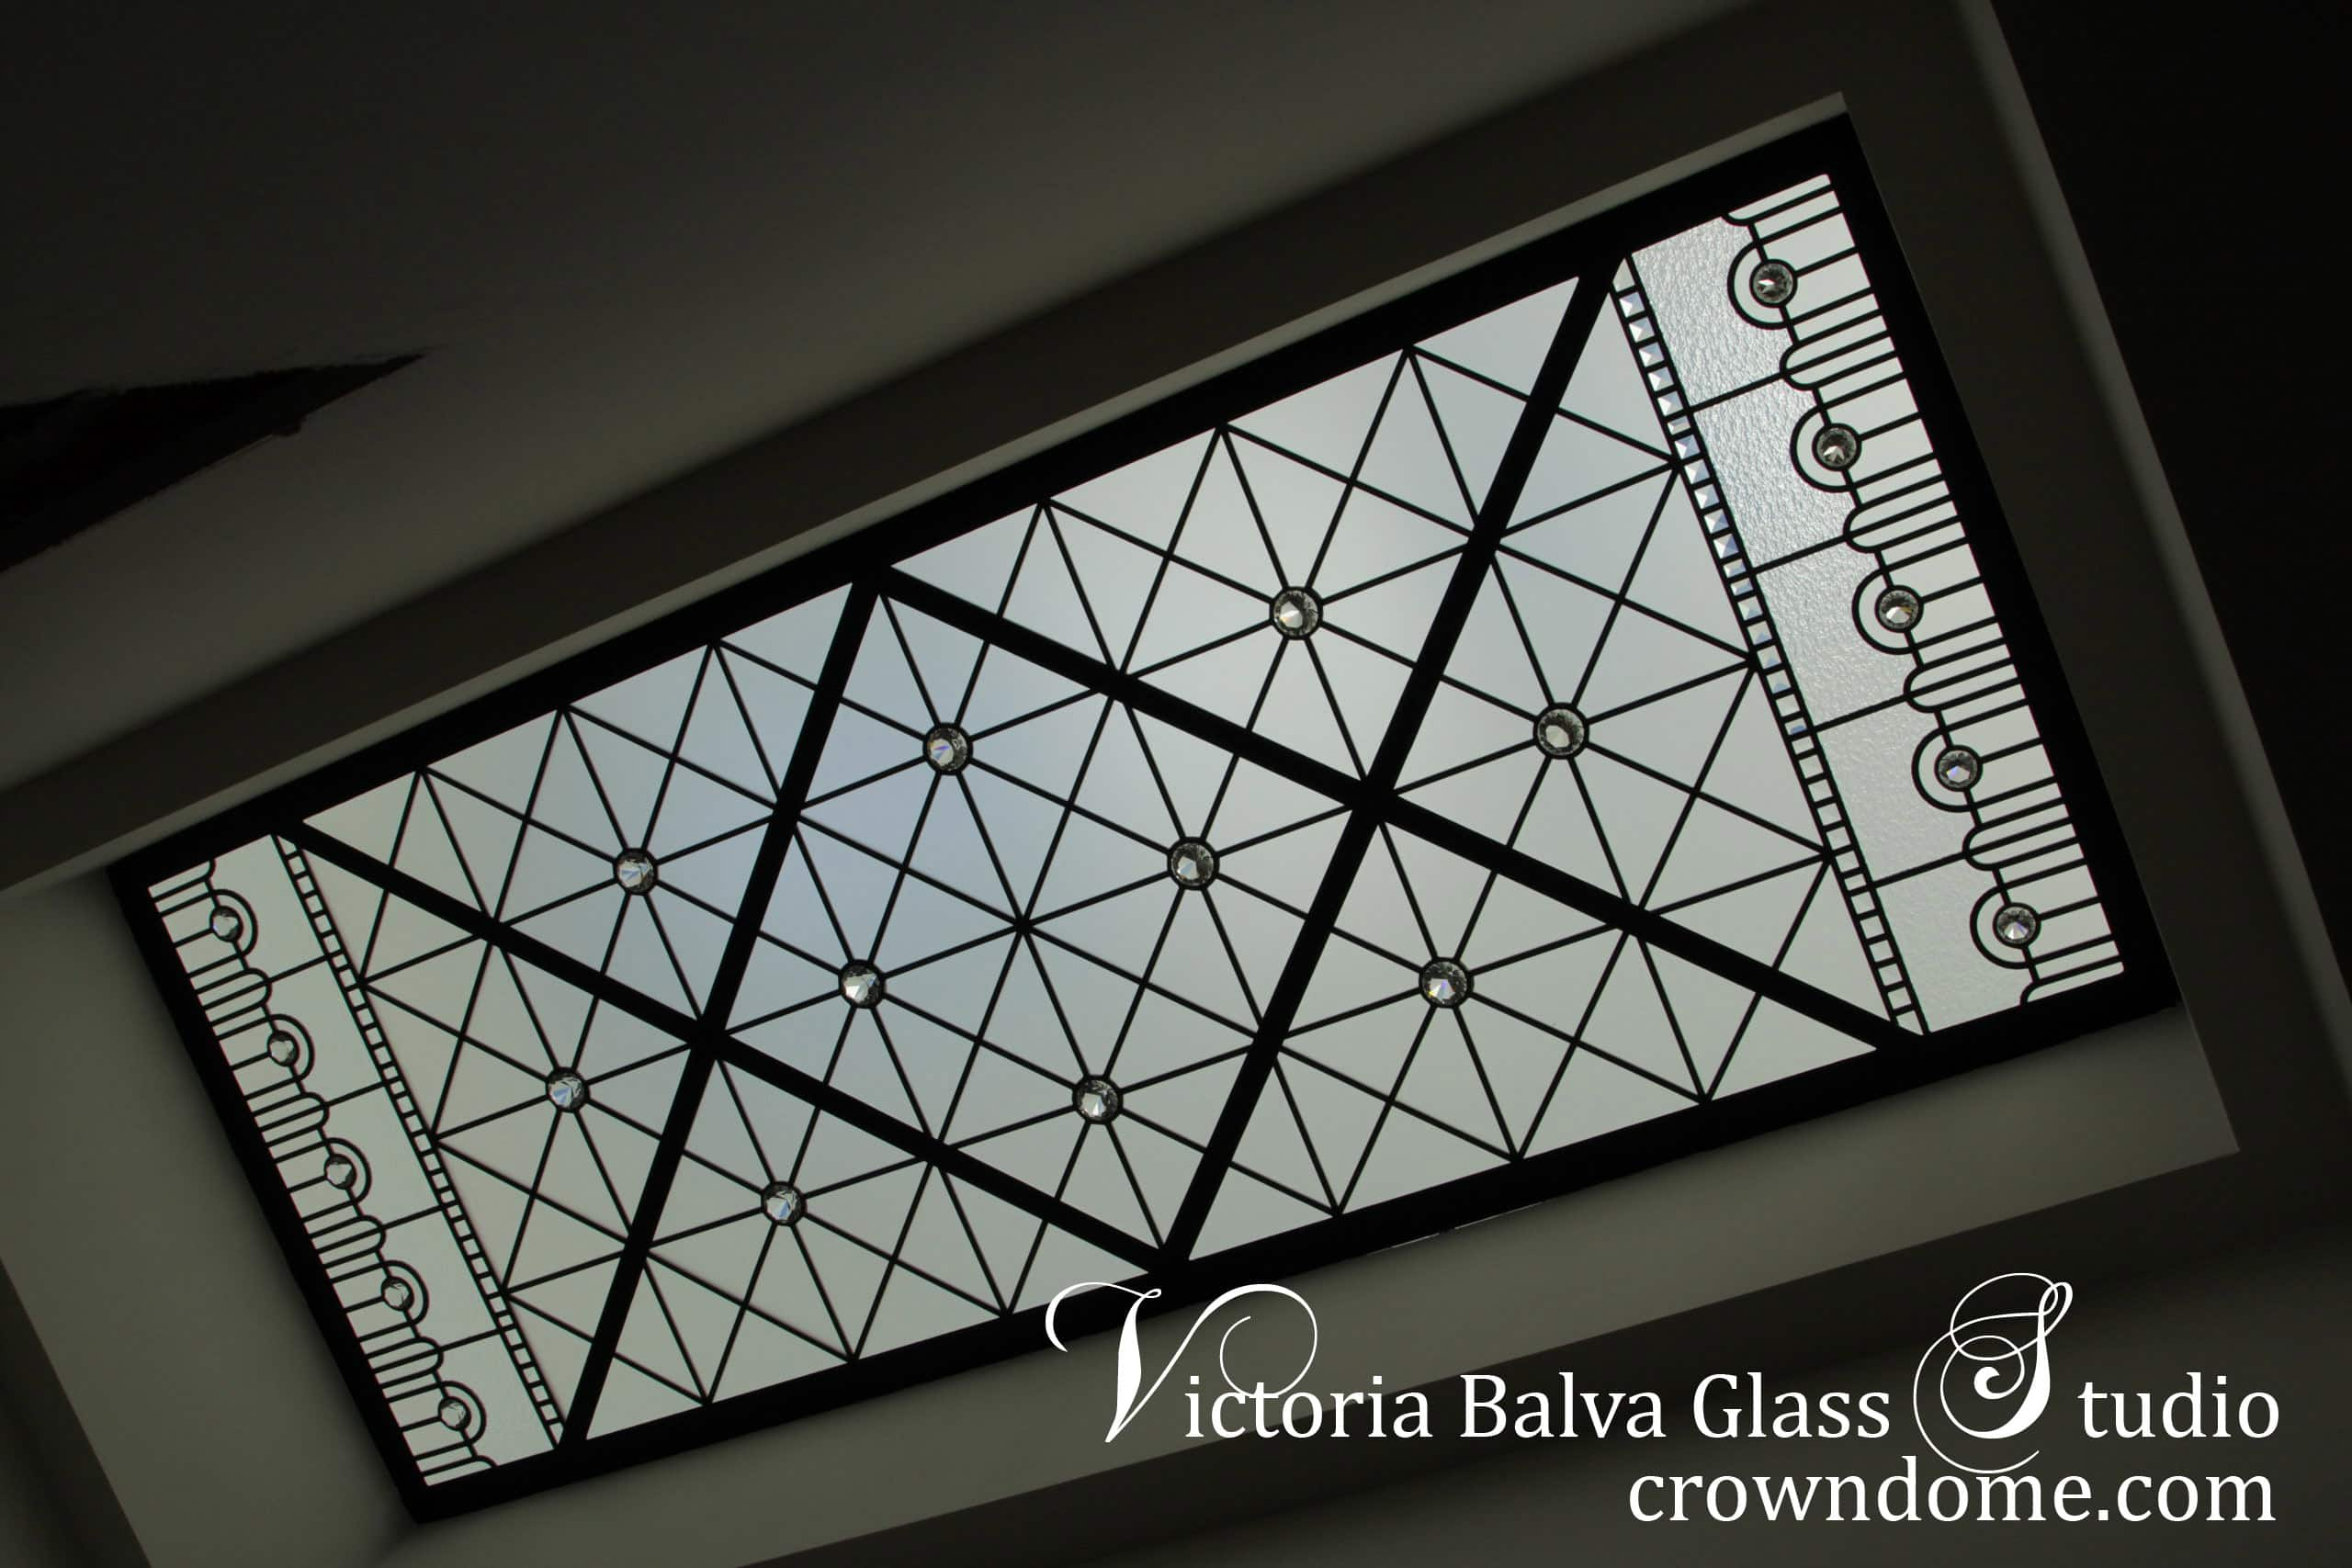 Contemporary stained leaded glass skylight ceiling for a hallway of a luxury custom built house with clear textured glasses, beveled glass and clear crystal jewels as accents. The contemporary styling of the glass ceiling design brings modern feeling into space with a reference to a classic design. Leaded glass skylight design by leaded glass artist Victoria Balva